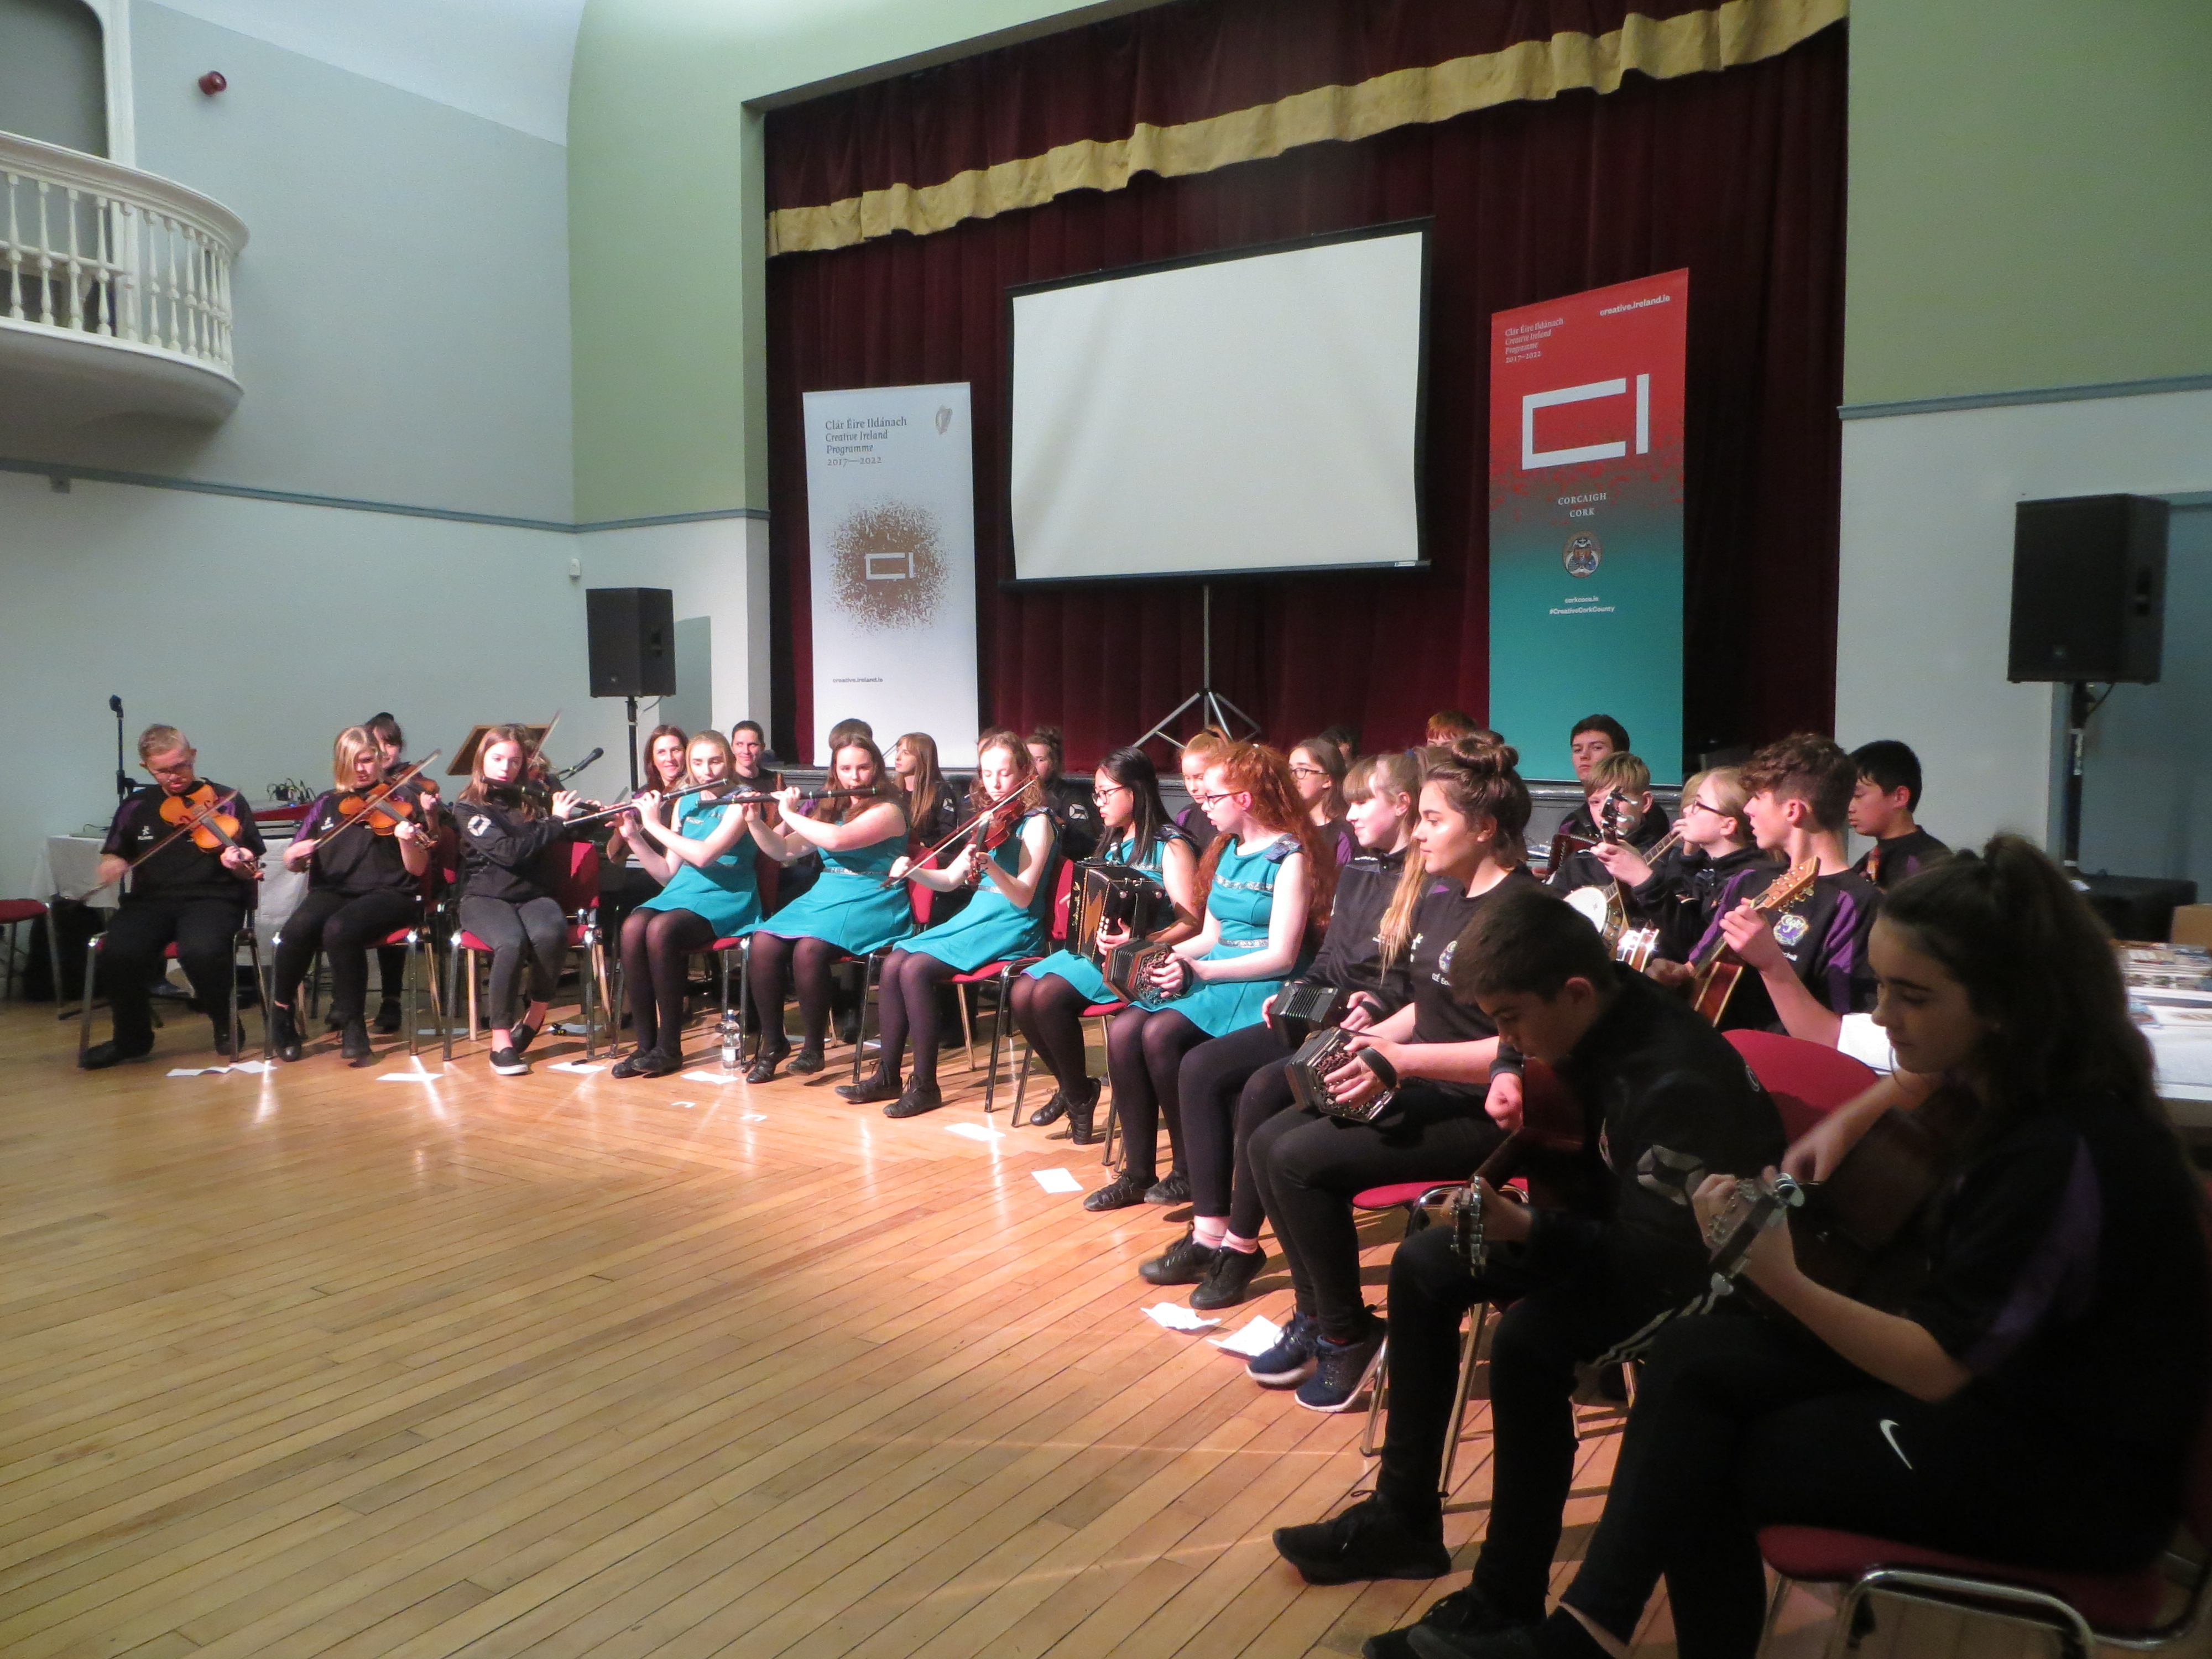 Conference2017youghalcomhaltas